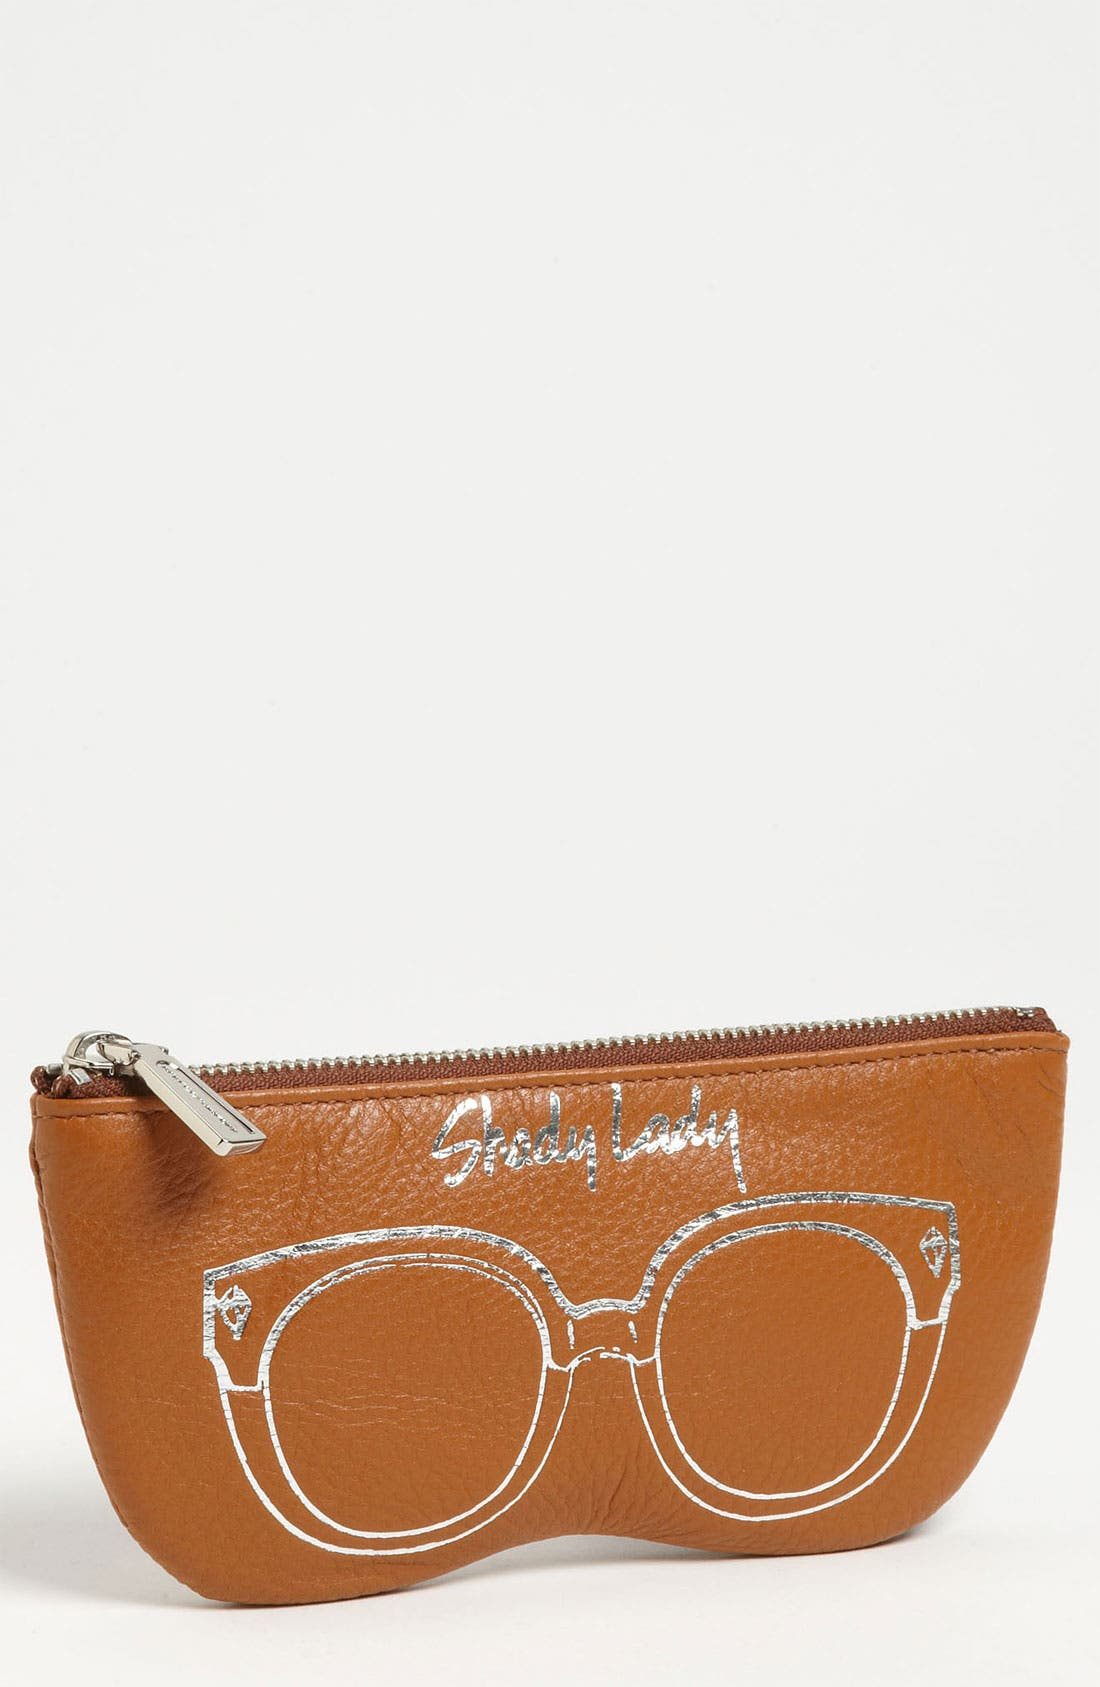 Alternate Image 1 Selected - Rebecca Minkoff 'Shady Lady' Leather Sunglasses Case